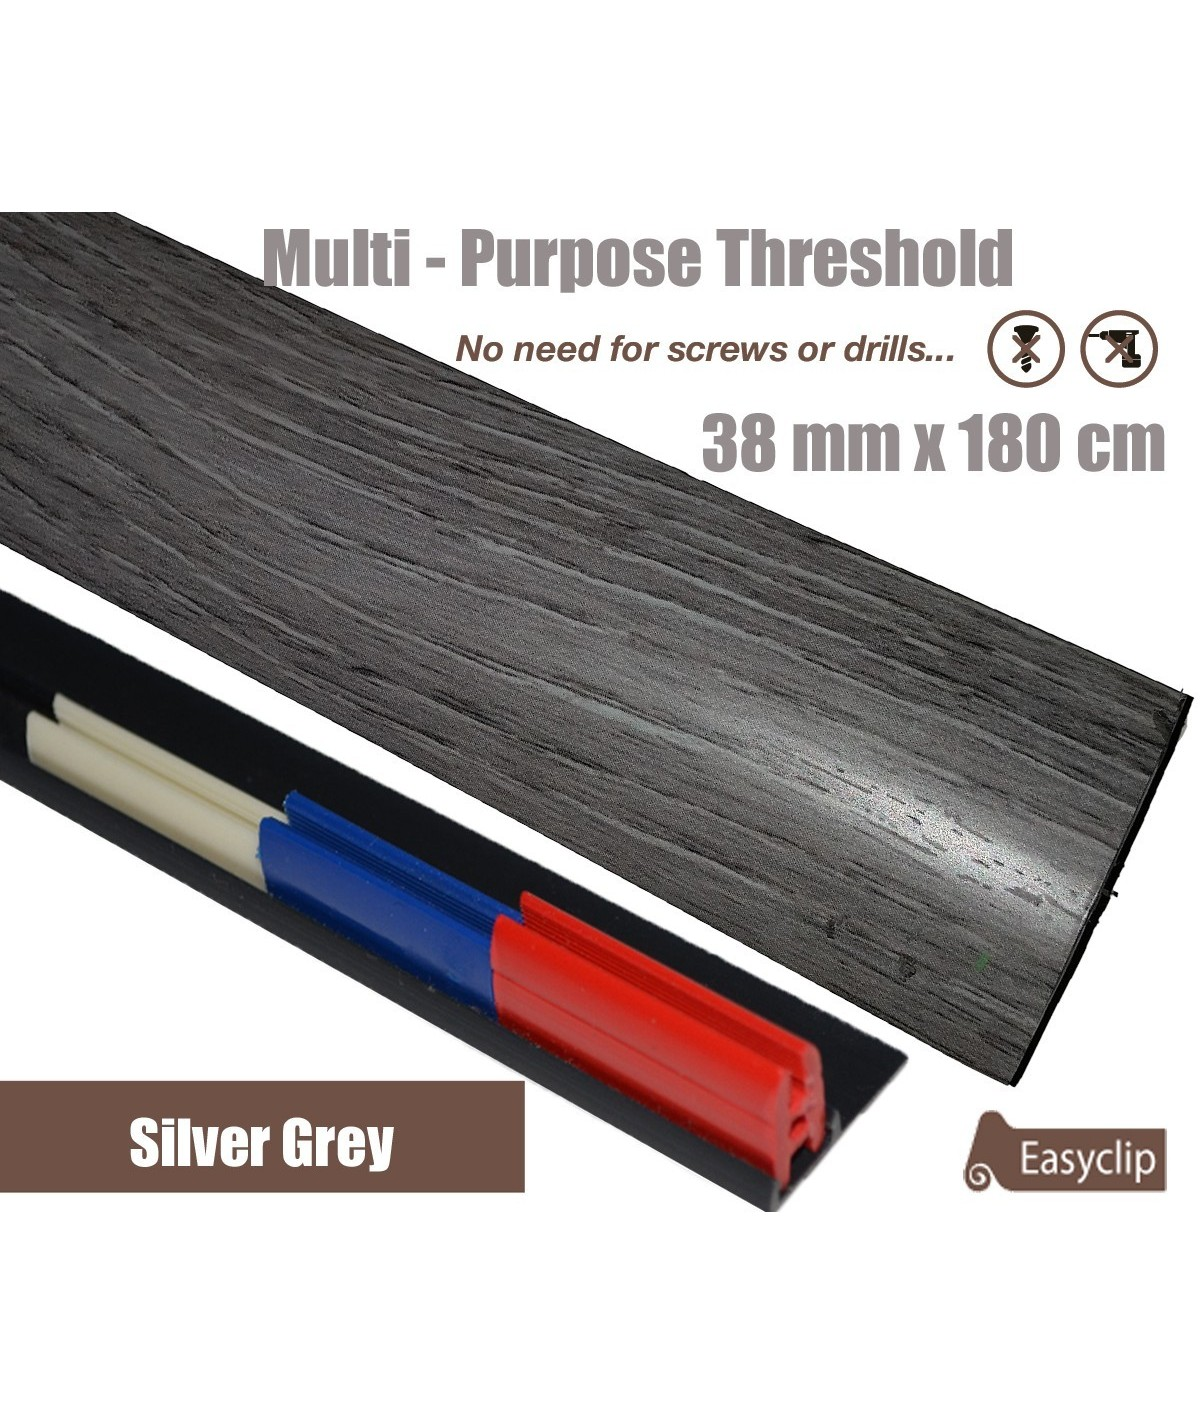 Silver Grey Threshold Strip 38mm x 180cm laminate multi Purpose Adhesive Clip System